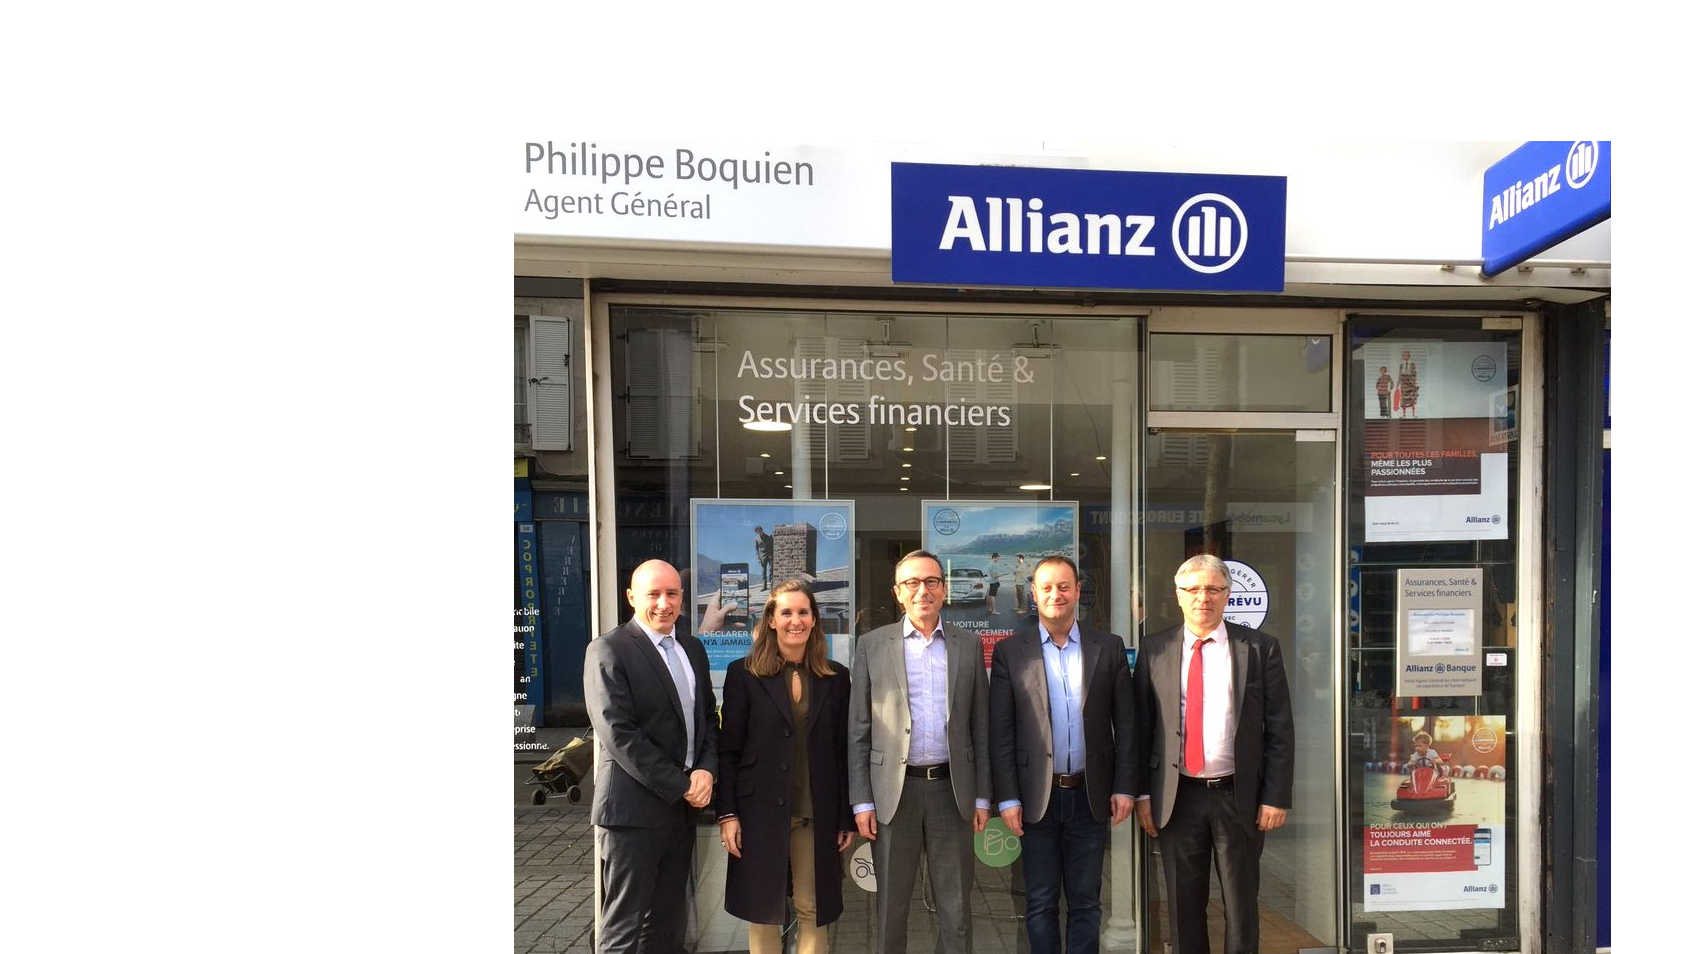 Allianz St denis basilique - Philippe BOQUIEN